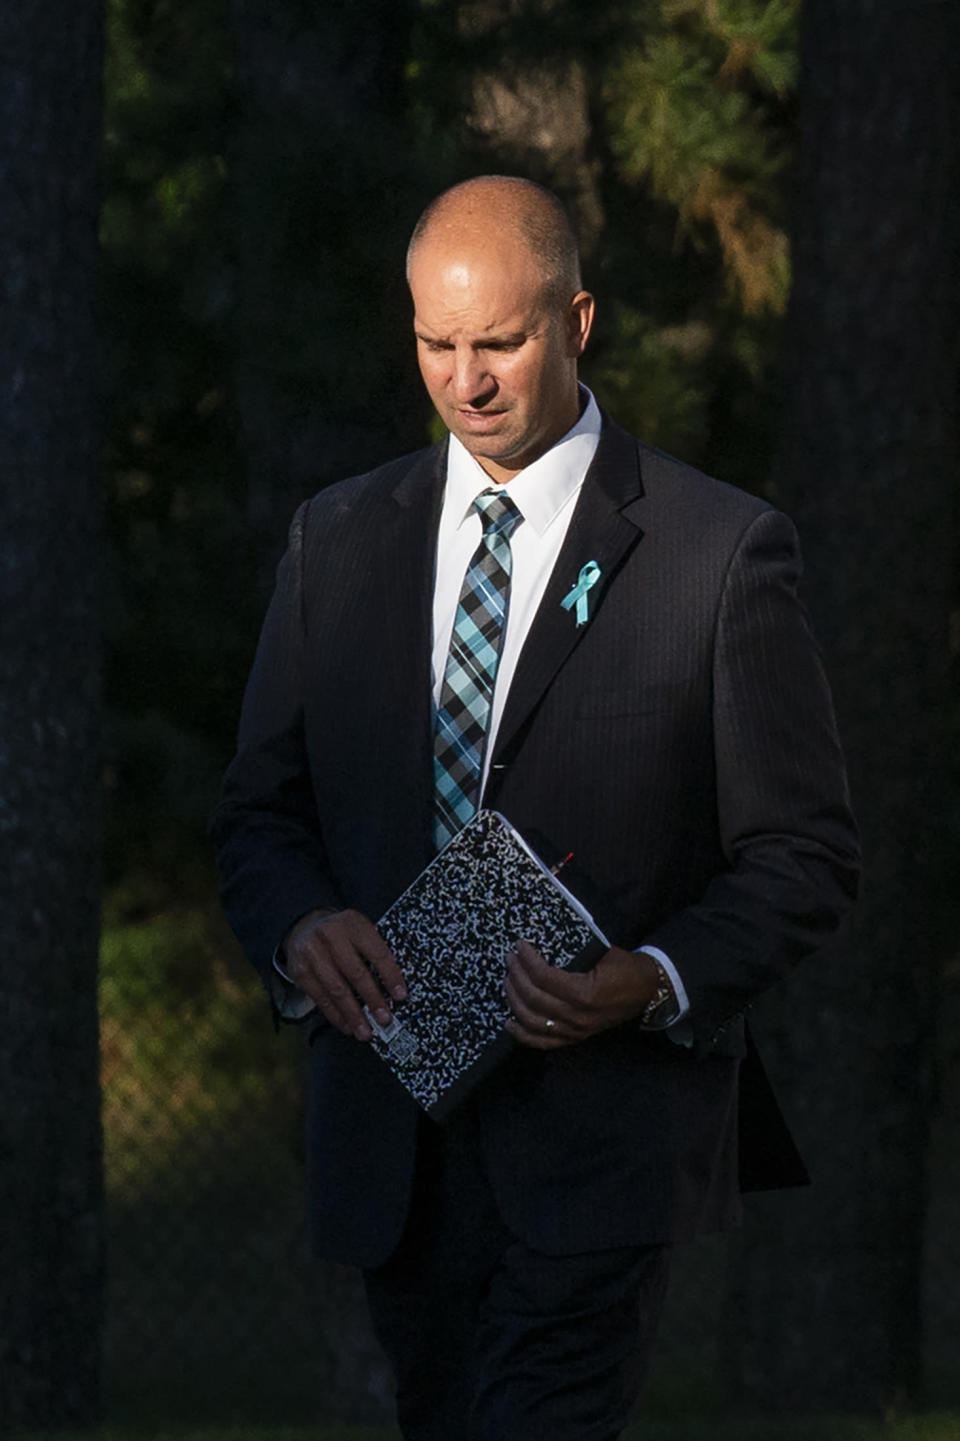 Gabby Petito's stepdad Jim Schmidt, right, walks the end of the funeral home viewing of Gabby Petito at Moloney's Funeral Home in Holbrook, N.Y. Sunday, Sept. 26, 2021. (AP Photo/Eduardo Munoz Alvarez)